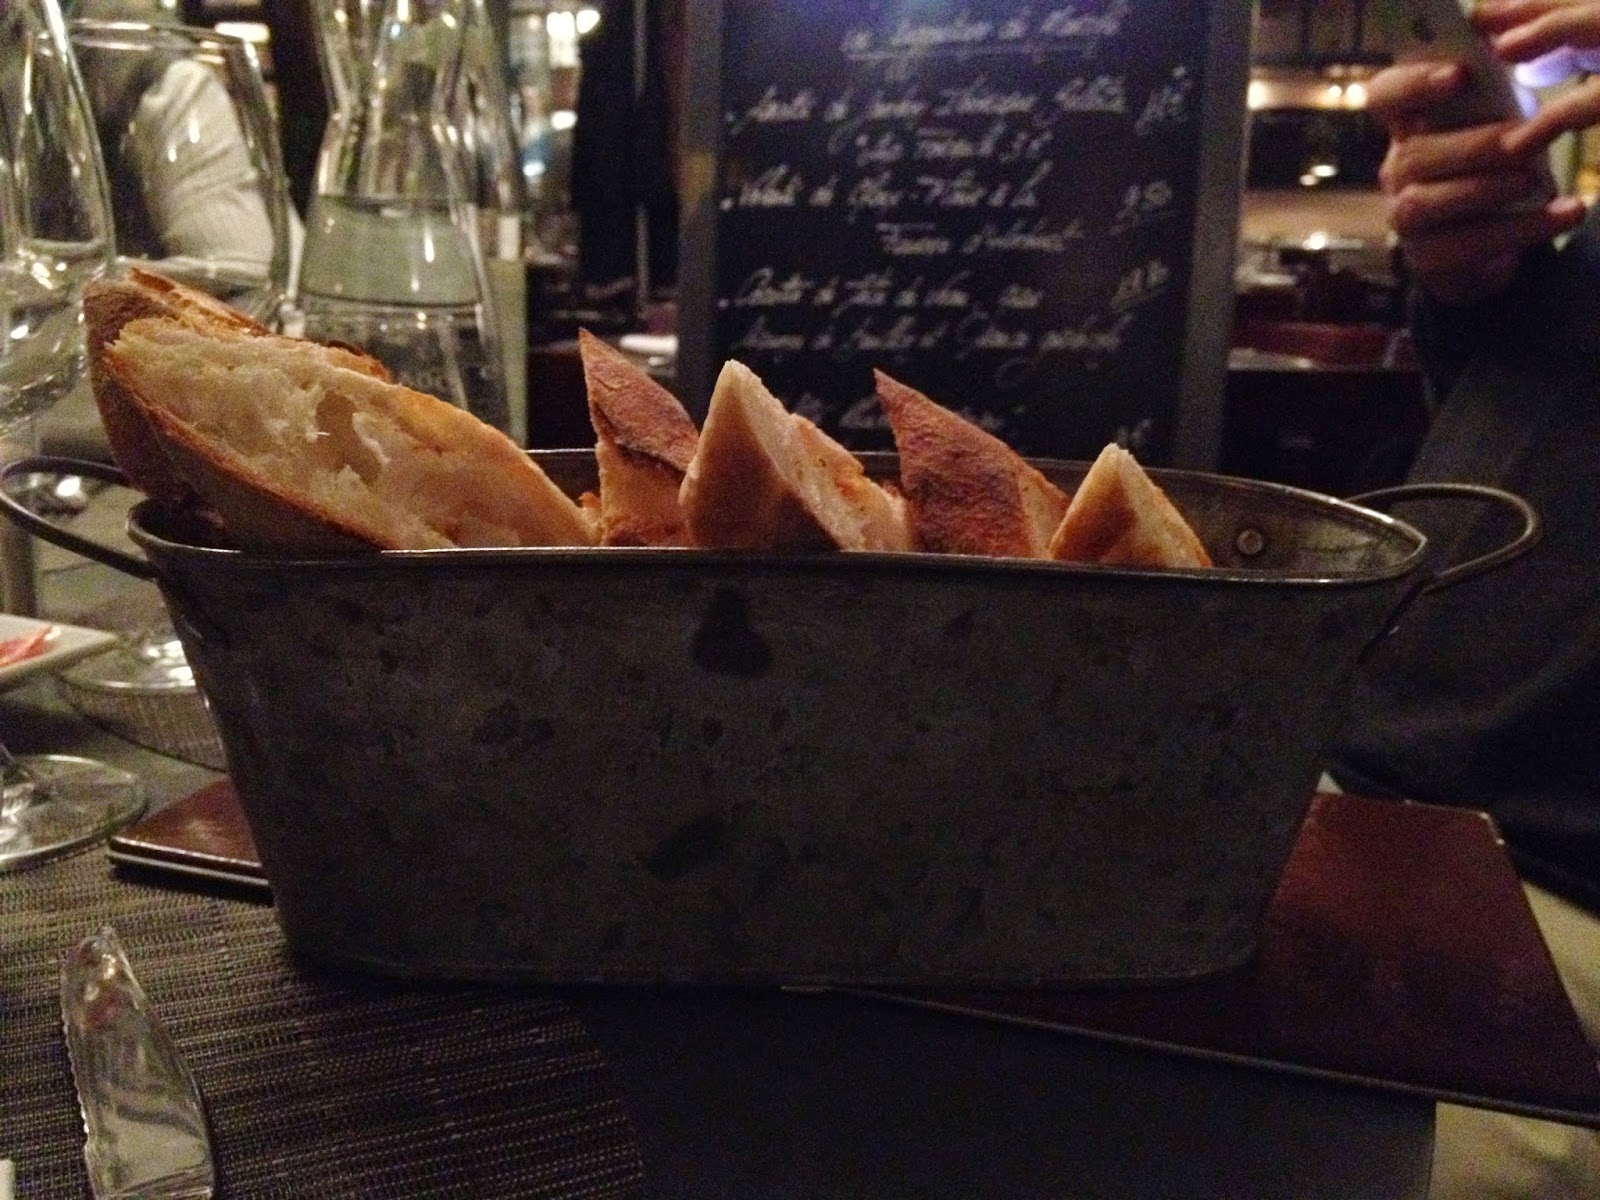 Stylish bread basket at Au Père Lapin, Suresnes, France